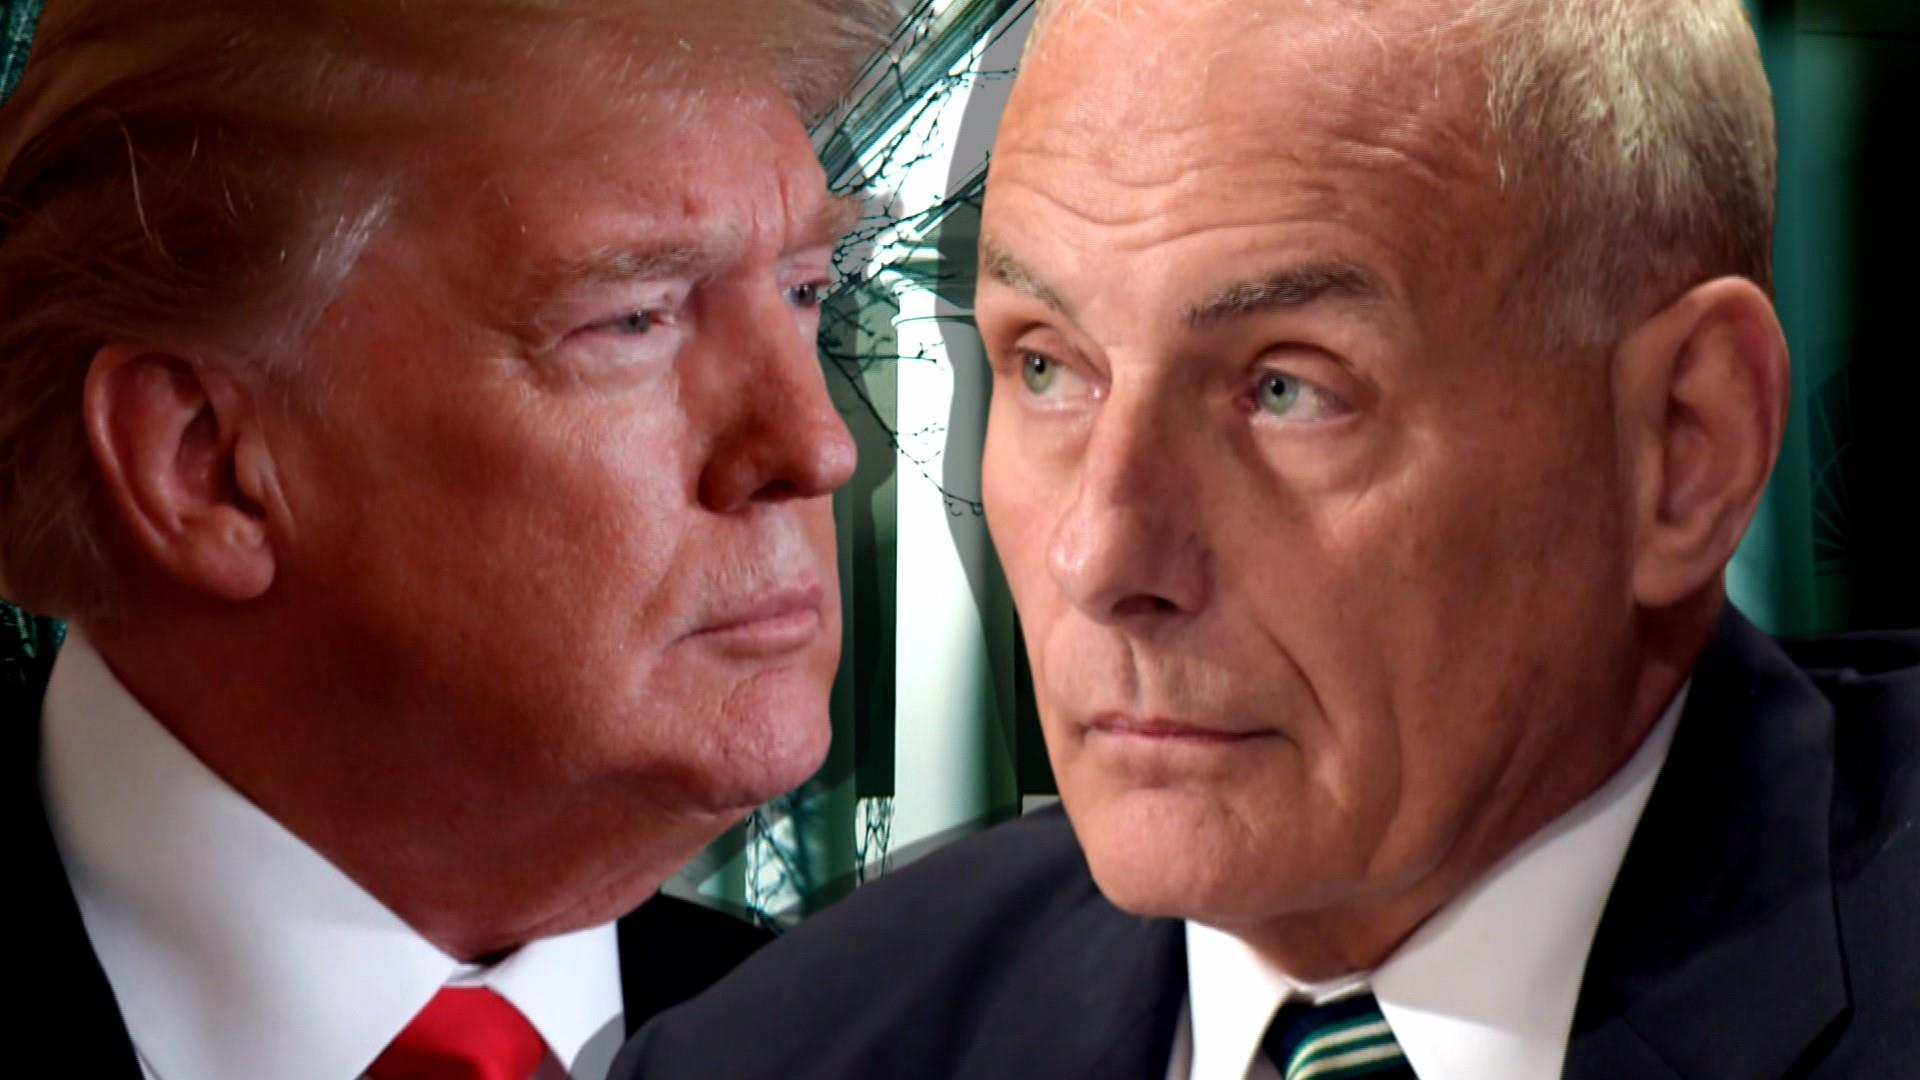 Kelly thinks he's saving U.S. from disaster, calls Trump 'idiot,' say White House staffers